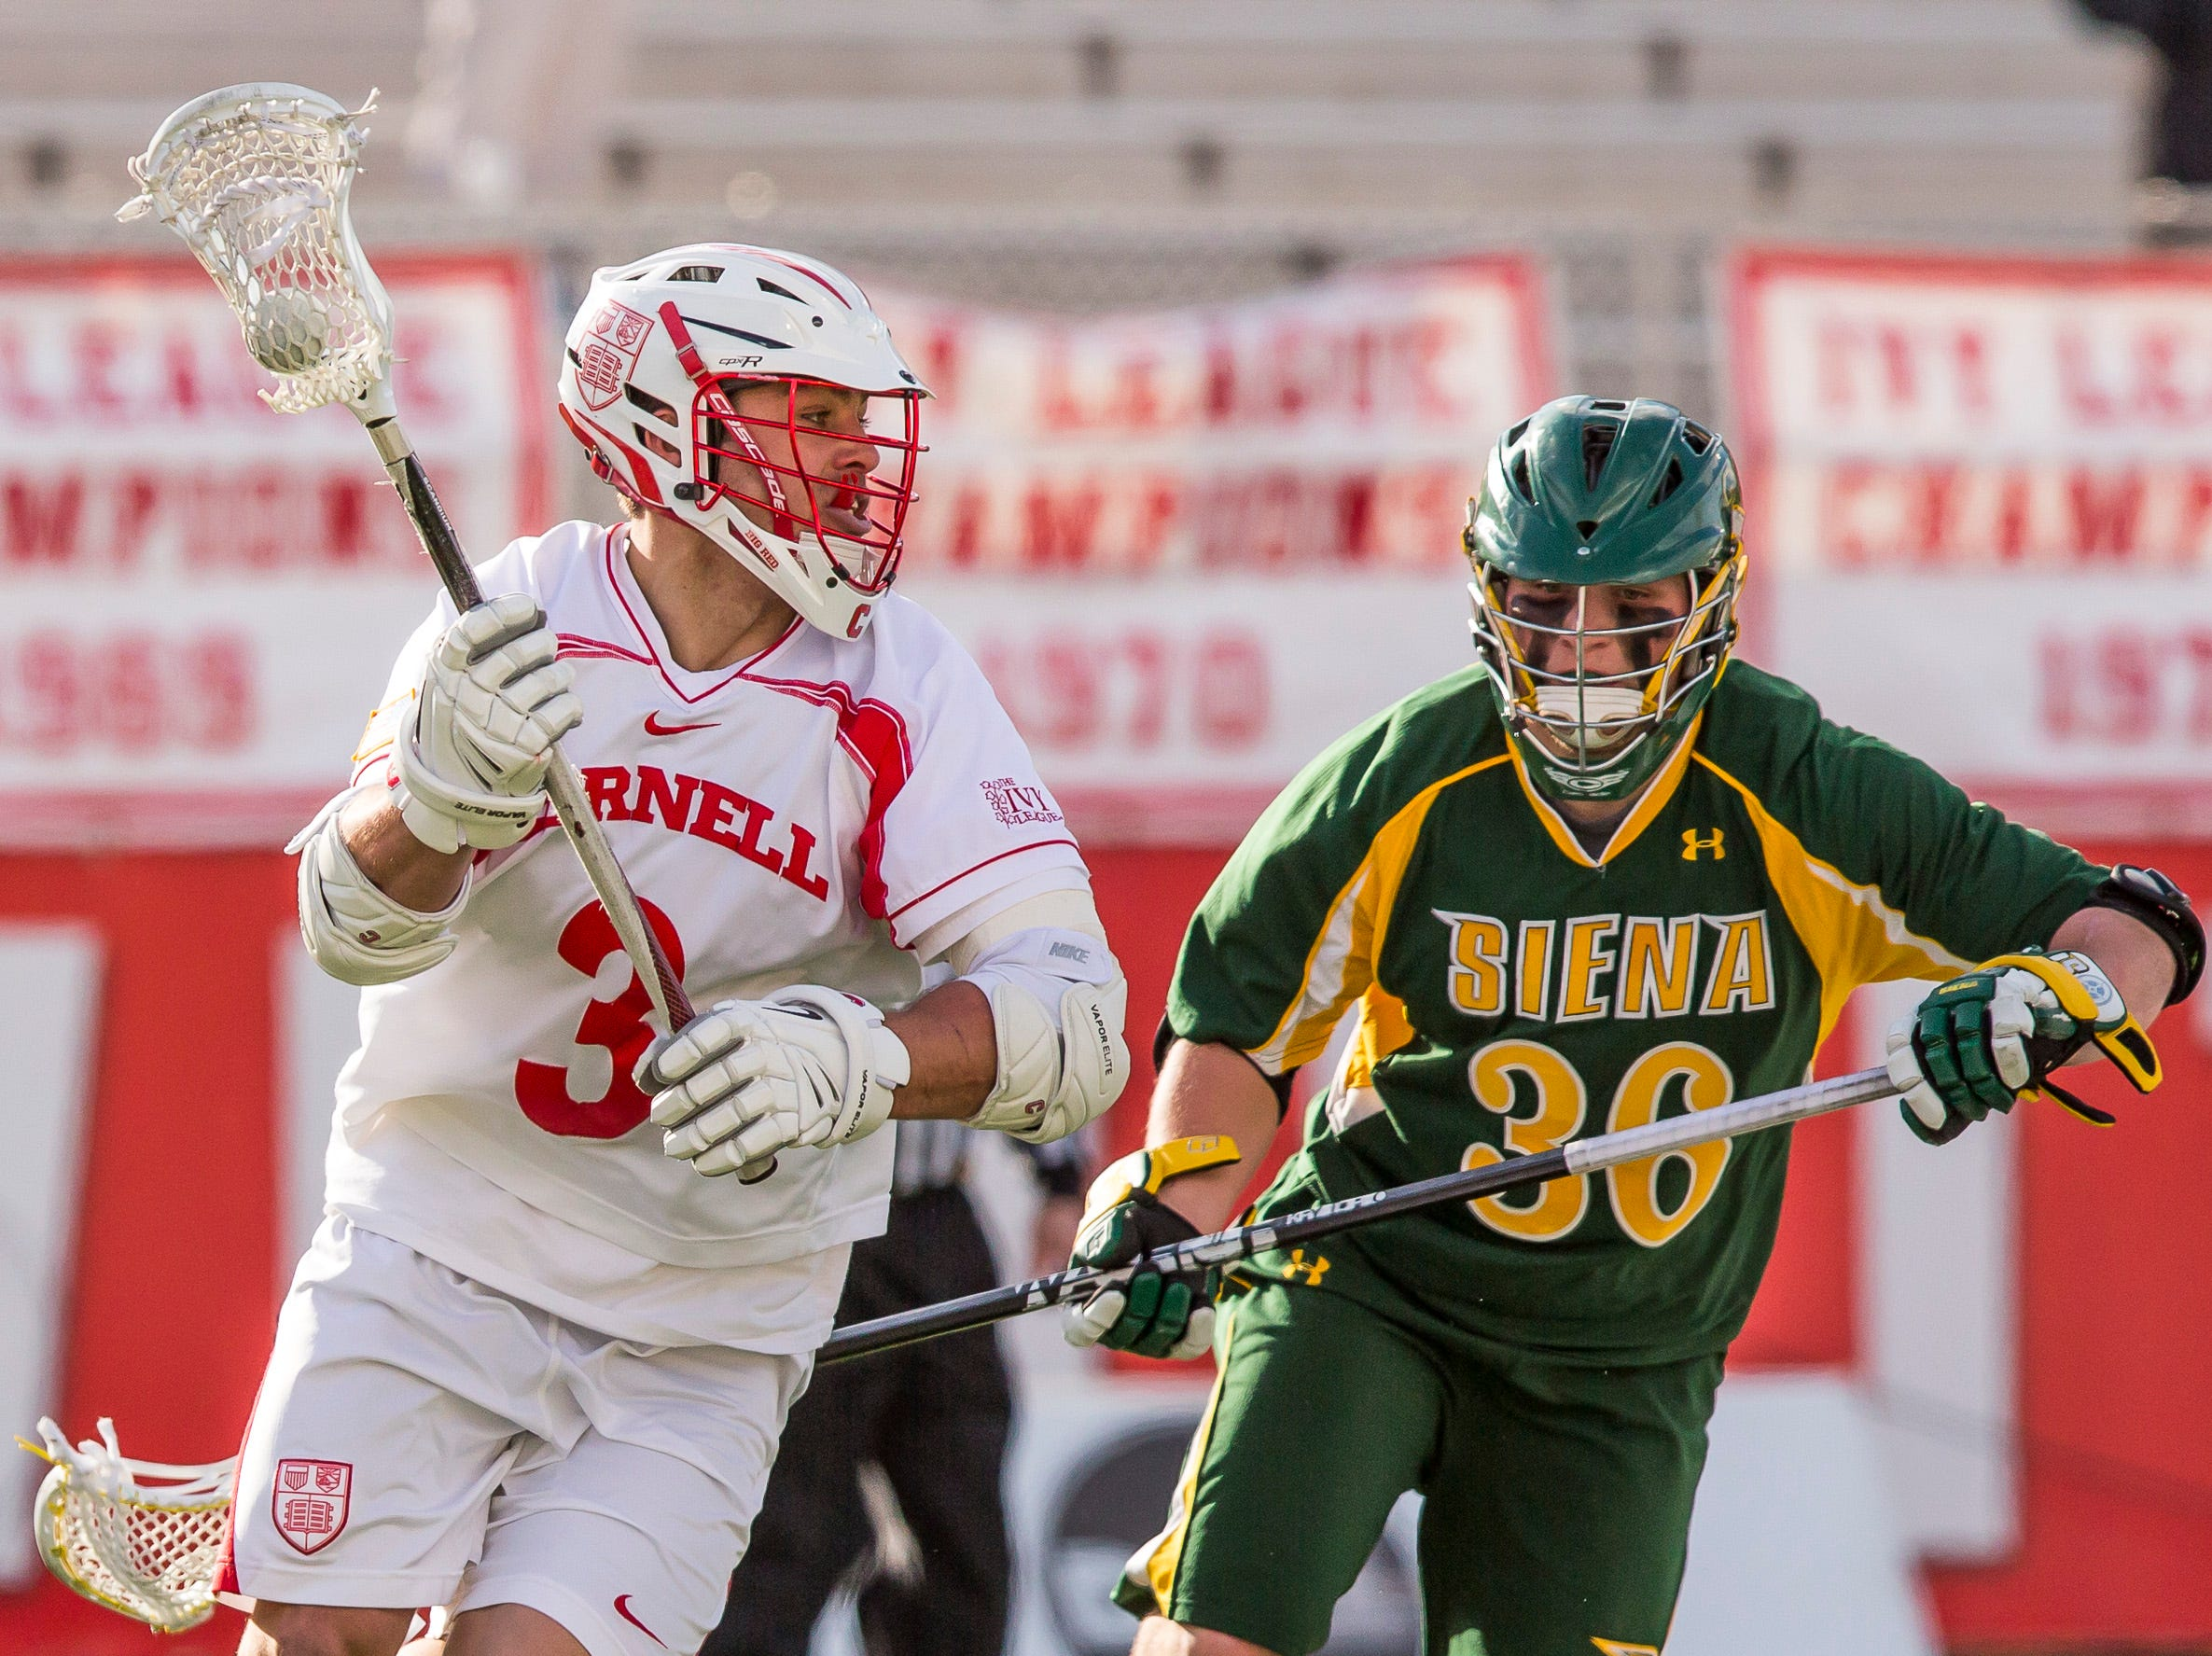 2013: Cornell senior Rob Pannell drives around Siena College sophomore Weston French Tuesday afternoon at Cornell's Schoellkopf Field. Cornell won 17 to 9.